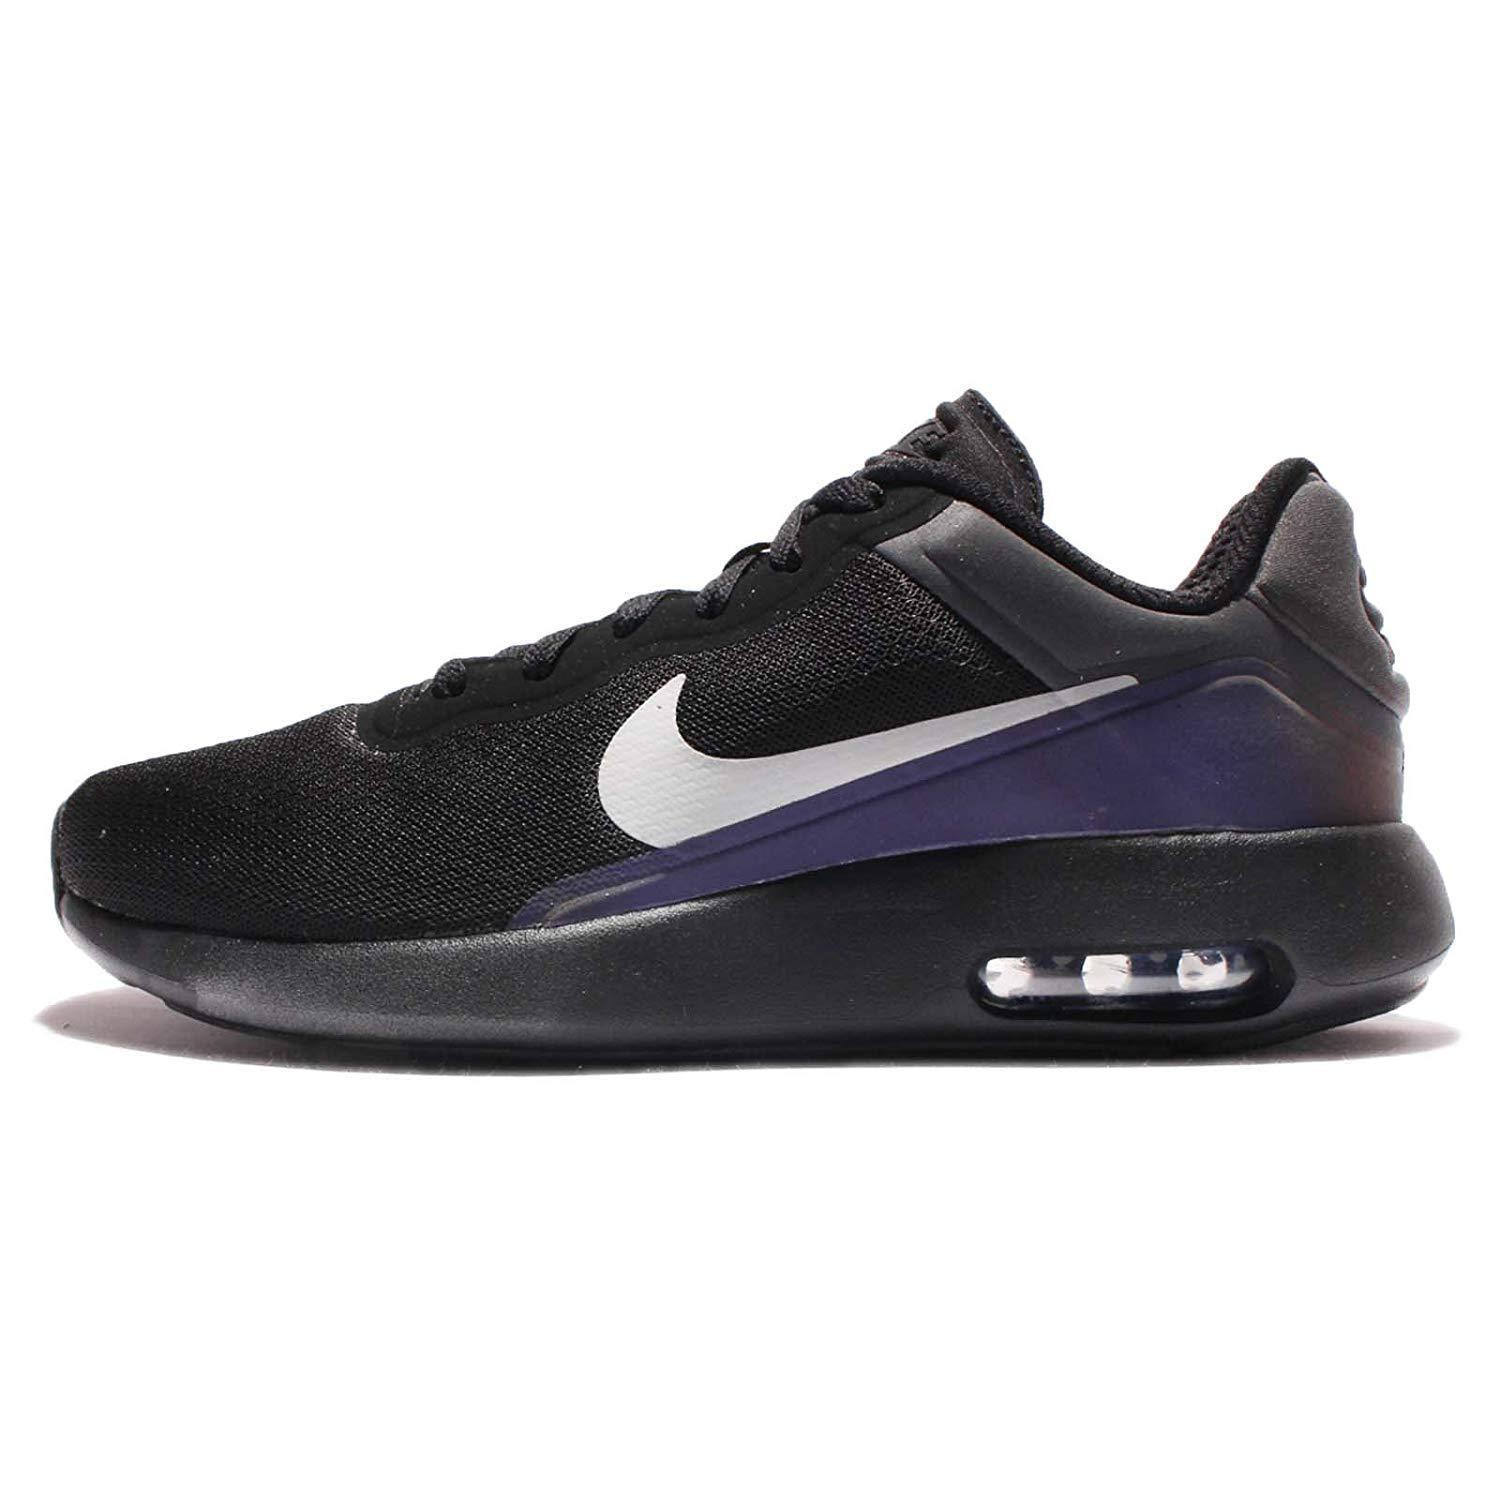 Details about Nike Air Max Tavas Mens Sportswear Running Shoes 705149 010 Black Anthracite NIB